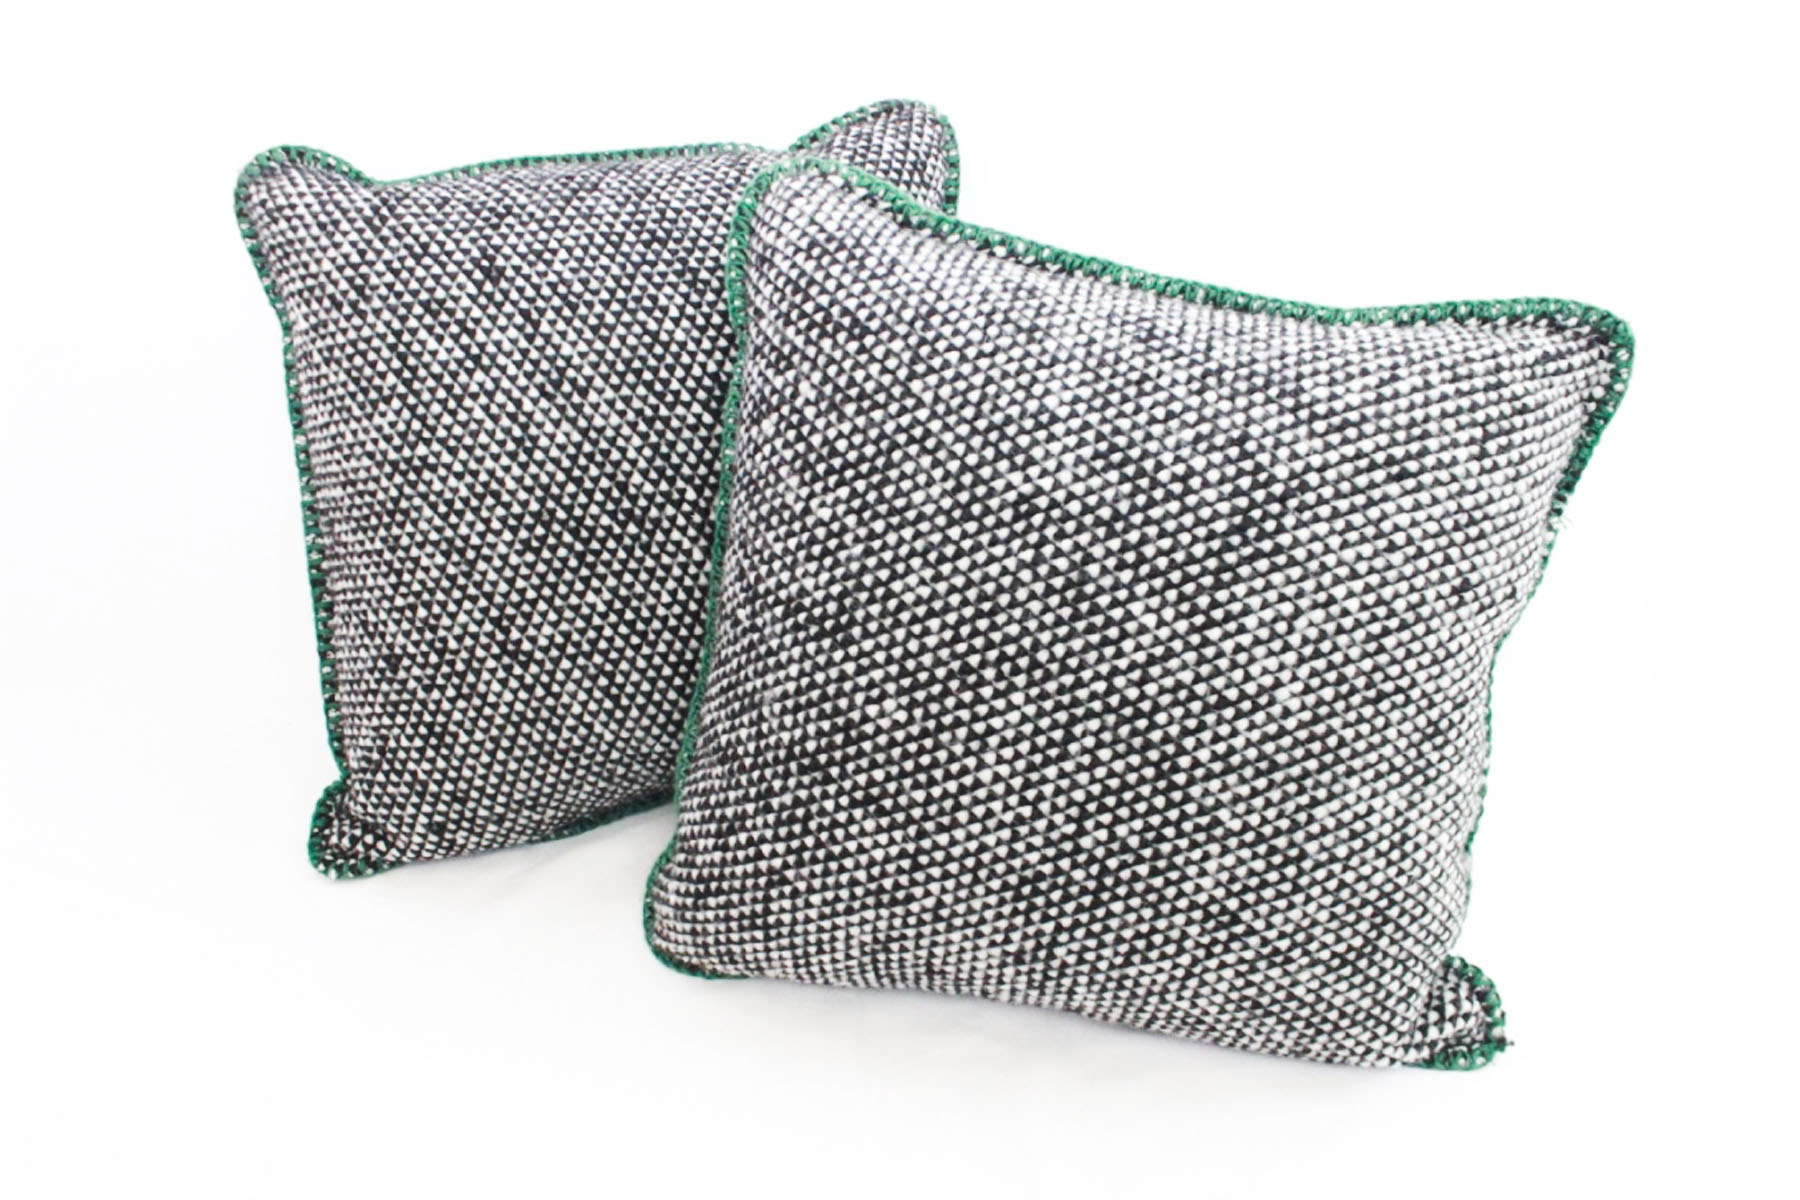 Maple Pillows - Scavenged Vintage Rentals